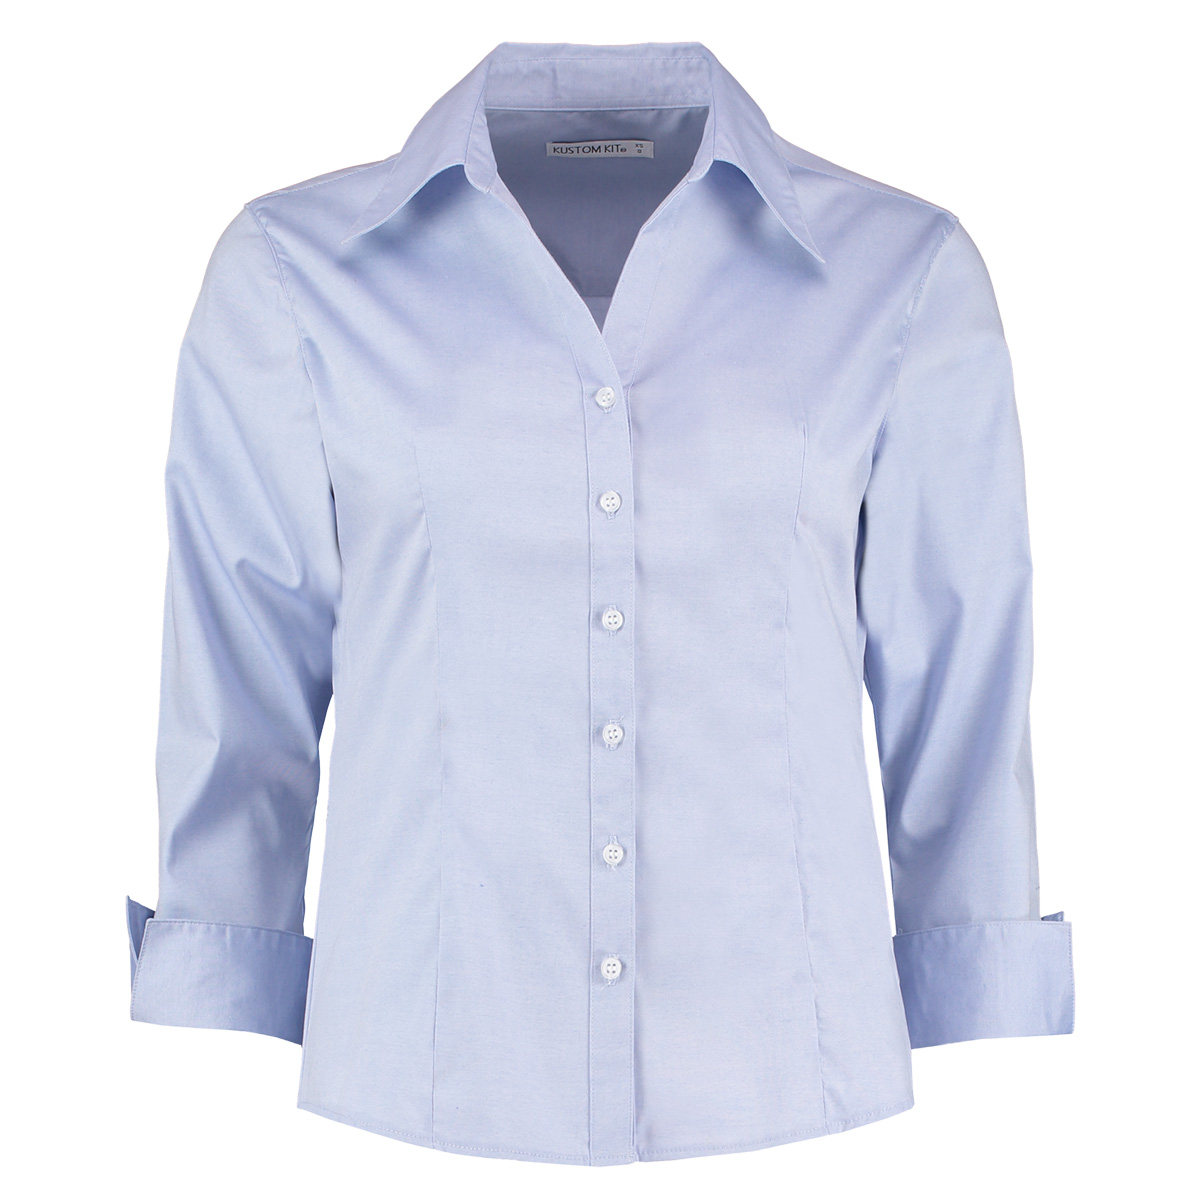 Womens Blue Oxford Shirt